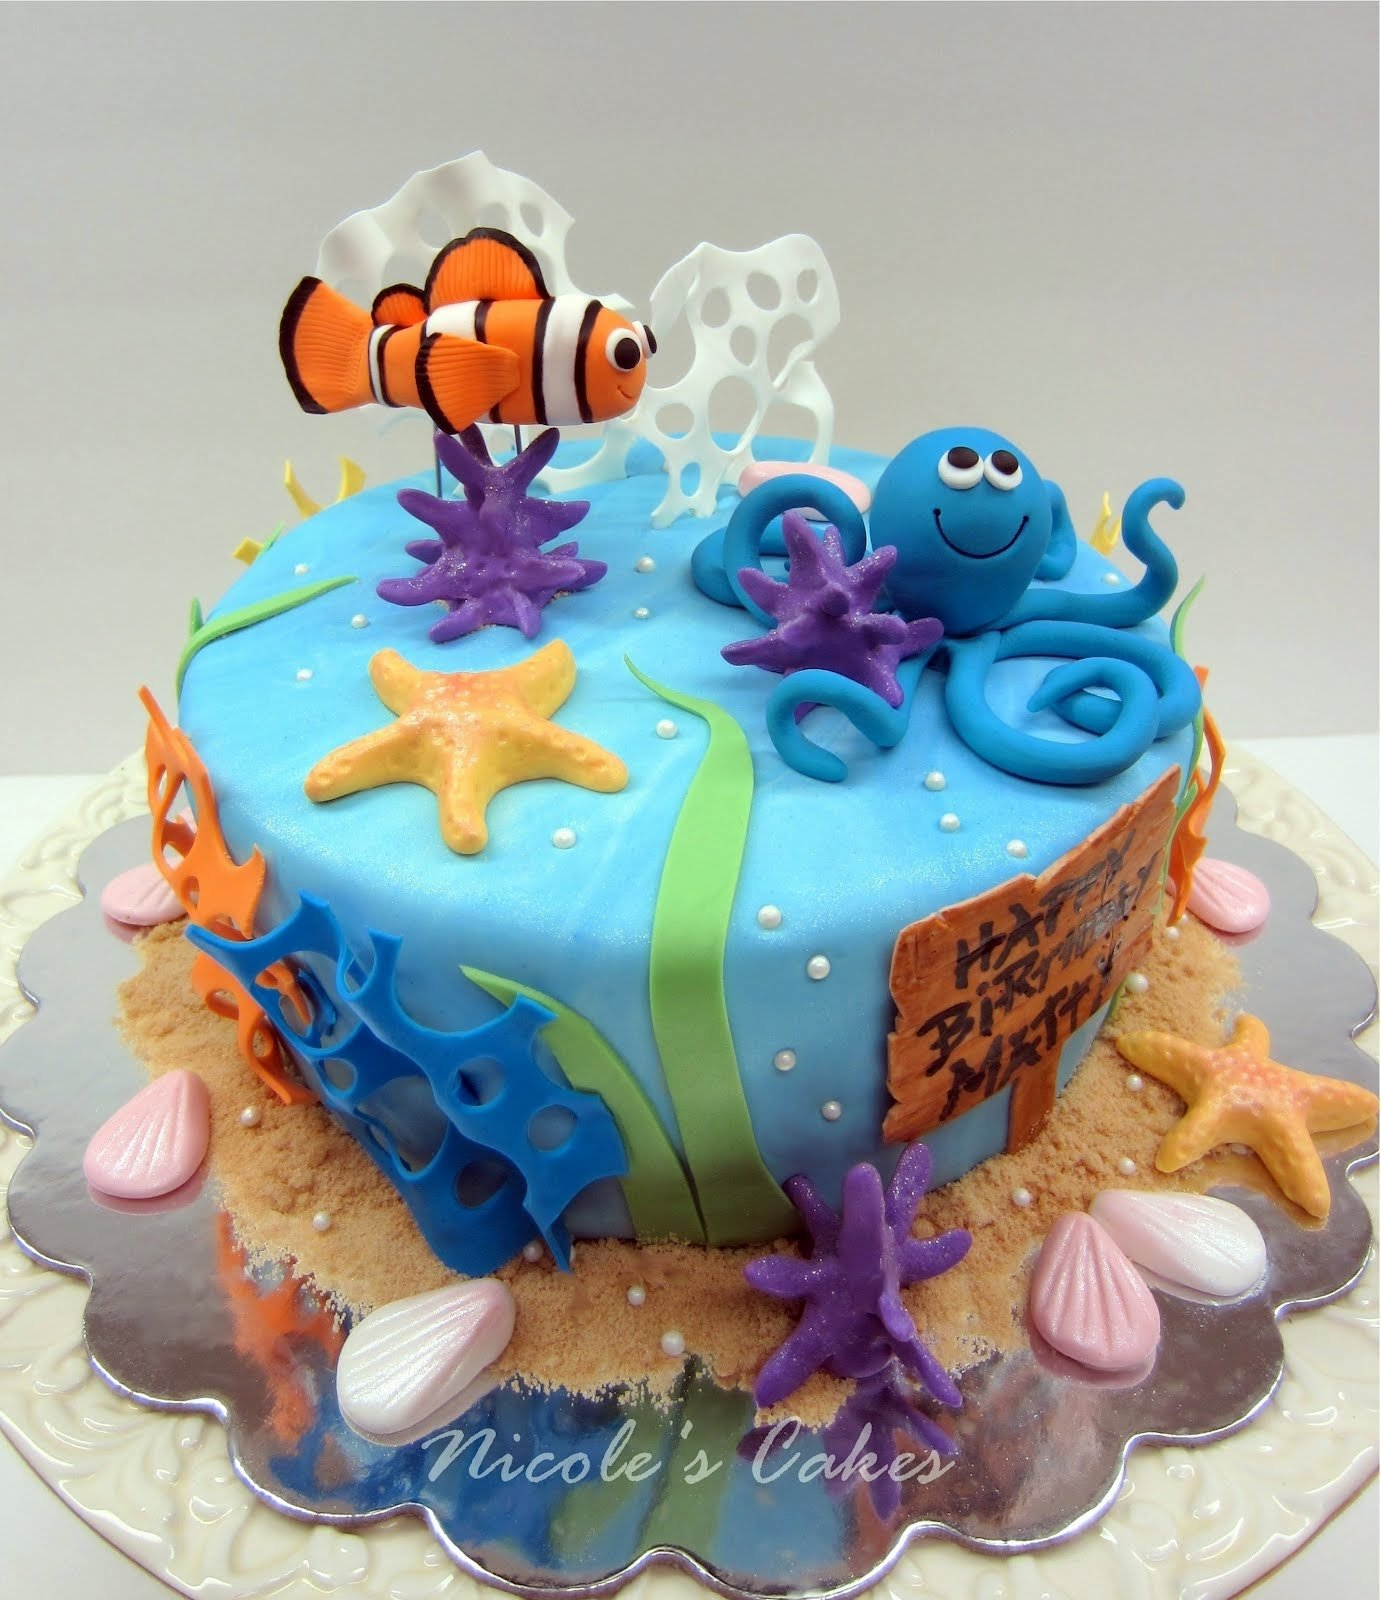 10 Nice Under The Sea Cake Ideas under the sea birthday cake confections cakes creations 2021